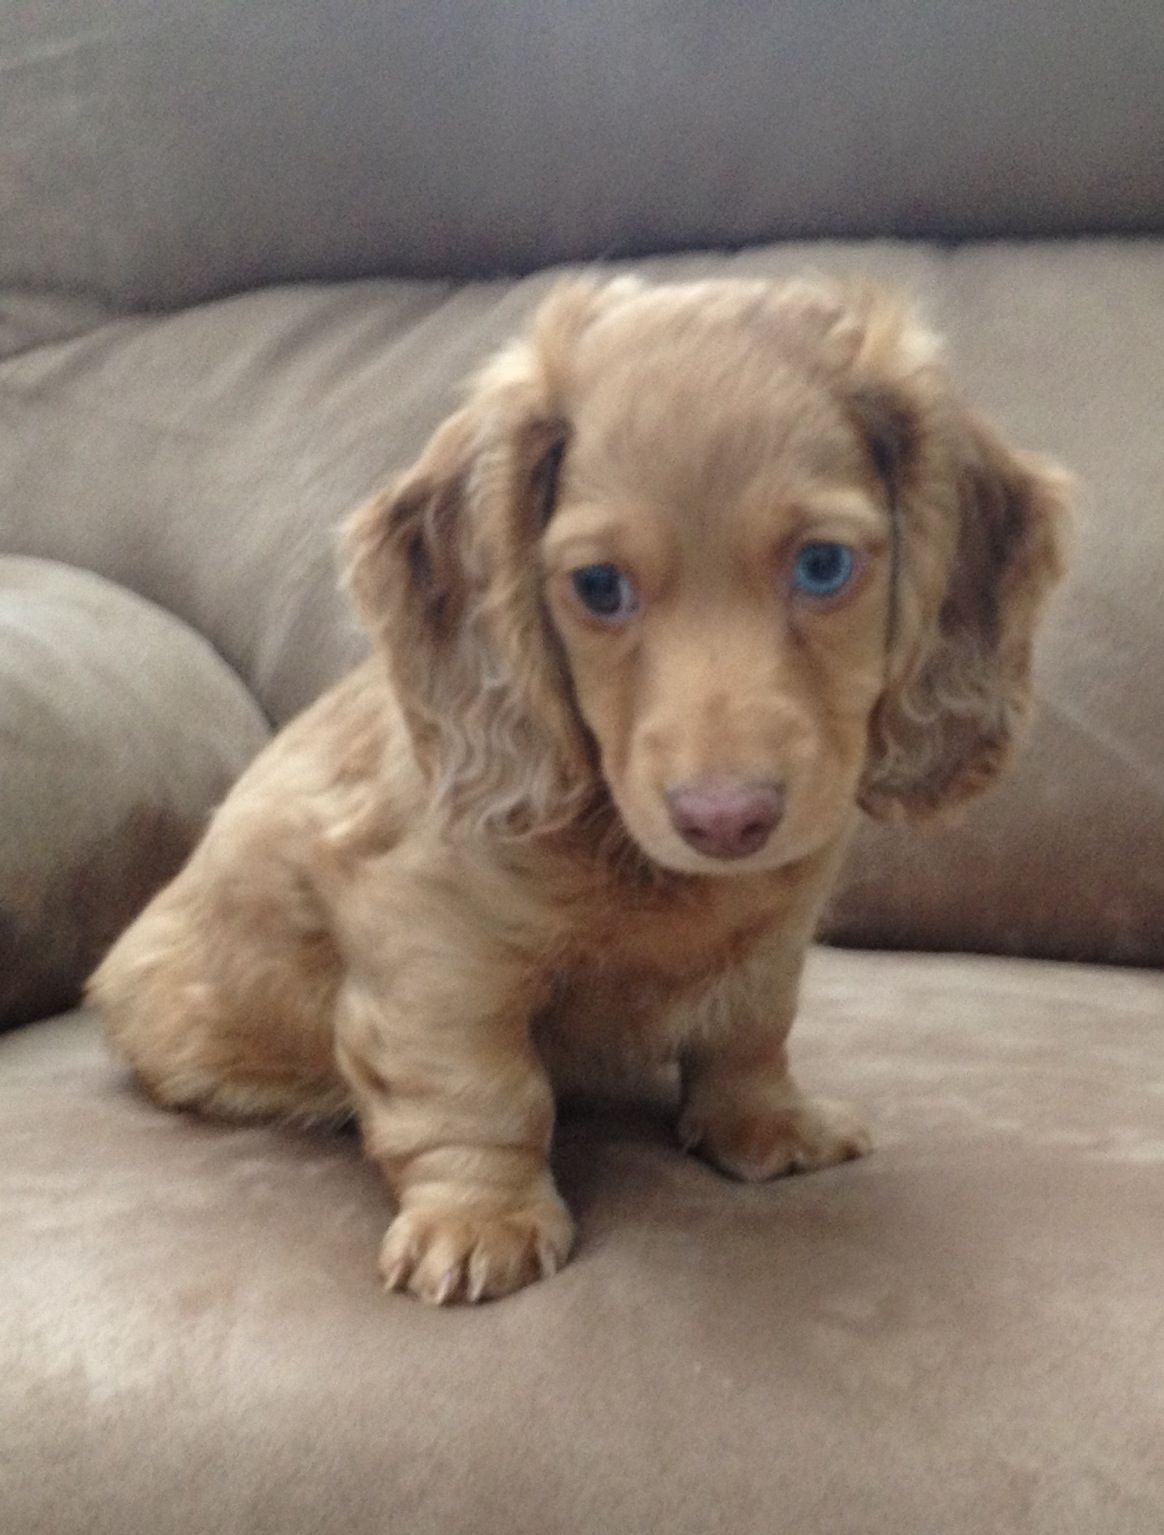 Mini Long Haired Dachshund Named Frankie With One Blue Eye And One